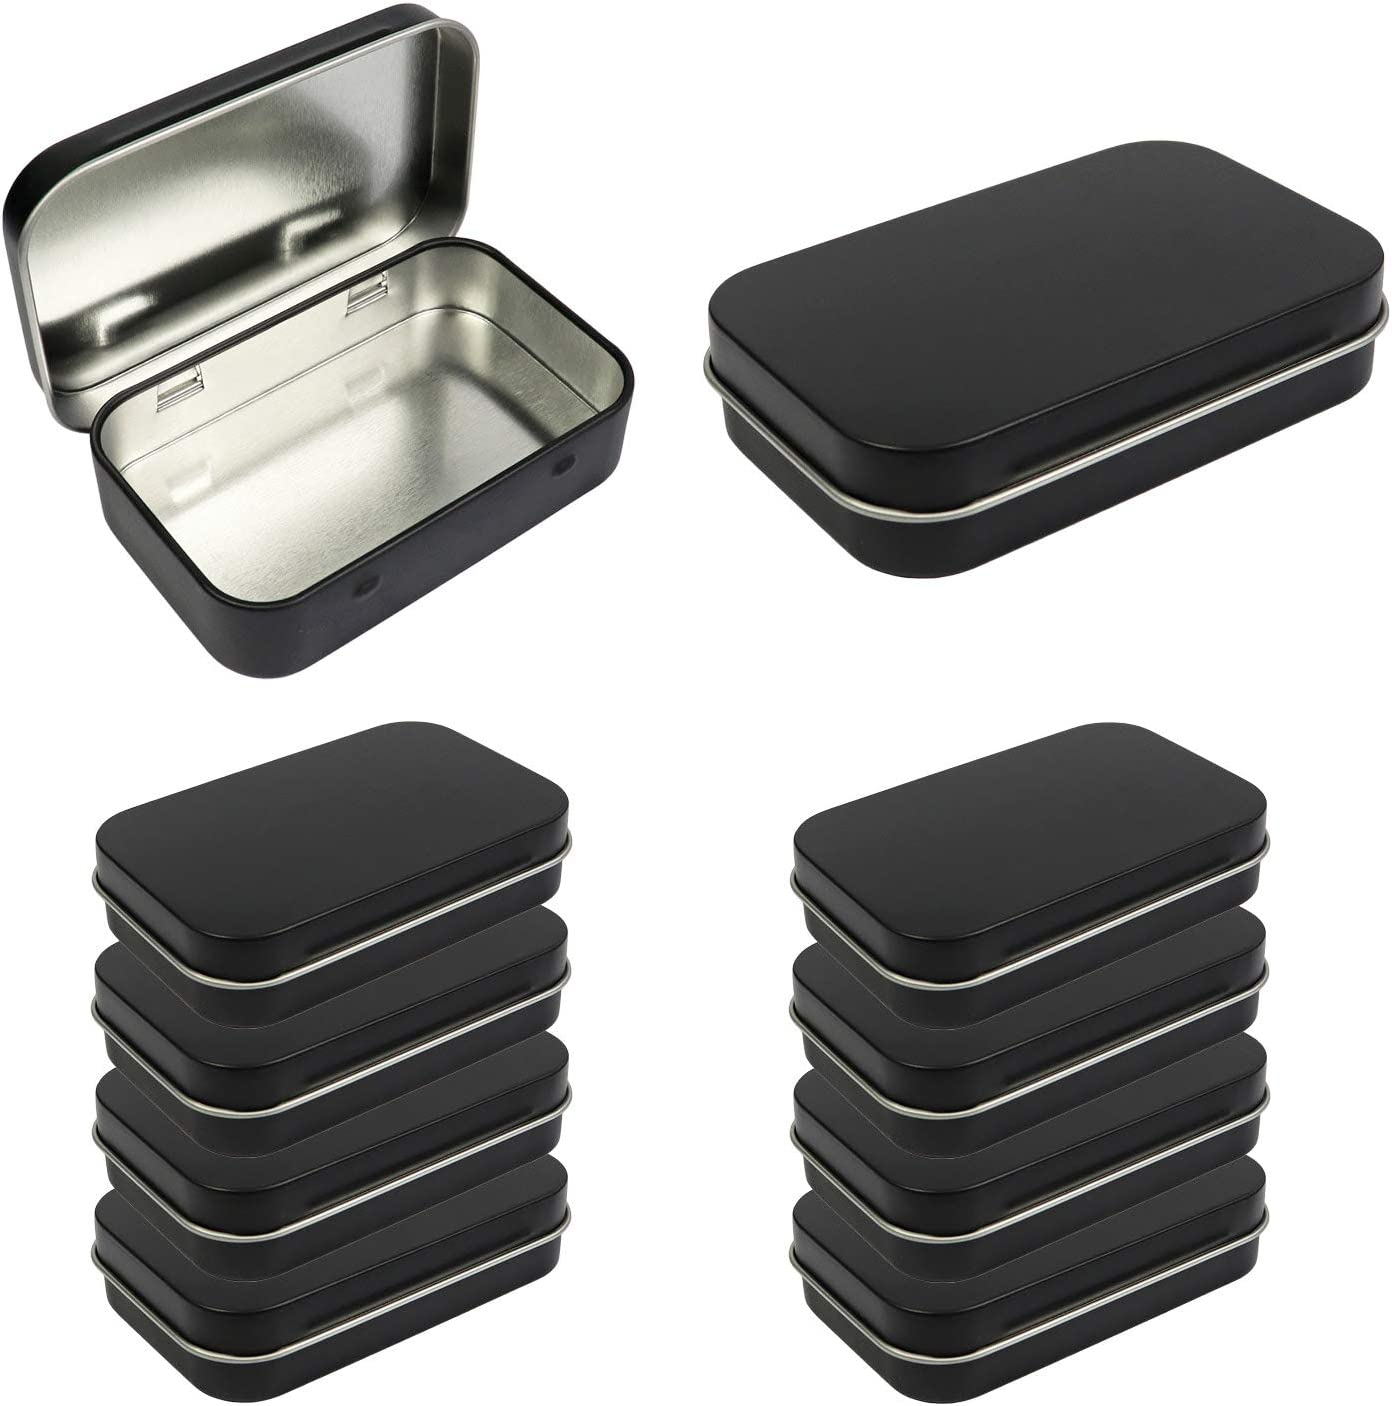 10 Pack Metal Rectangular Empty Hinged Tins Box Containers 3.75 by 2.45 by 0.8 Inch Black Mini Portable Box Small Storage Kit Home Organizer (10 Black)